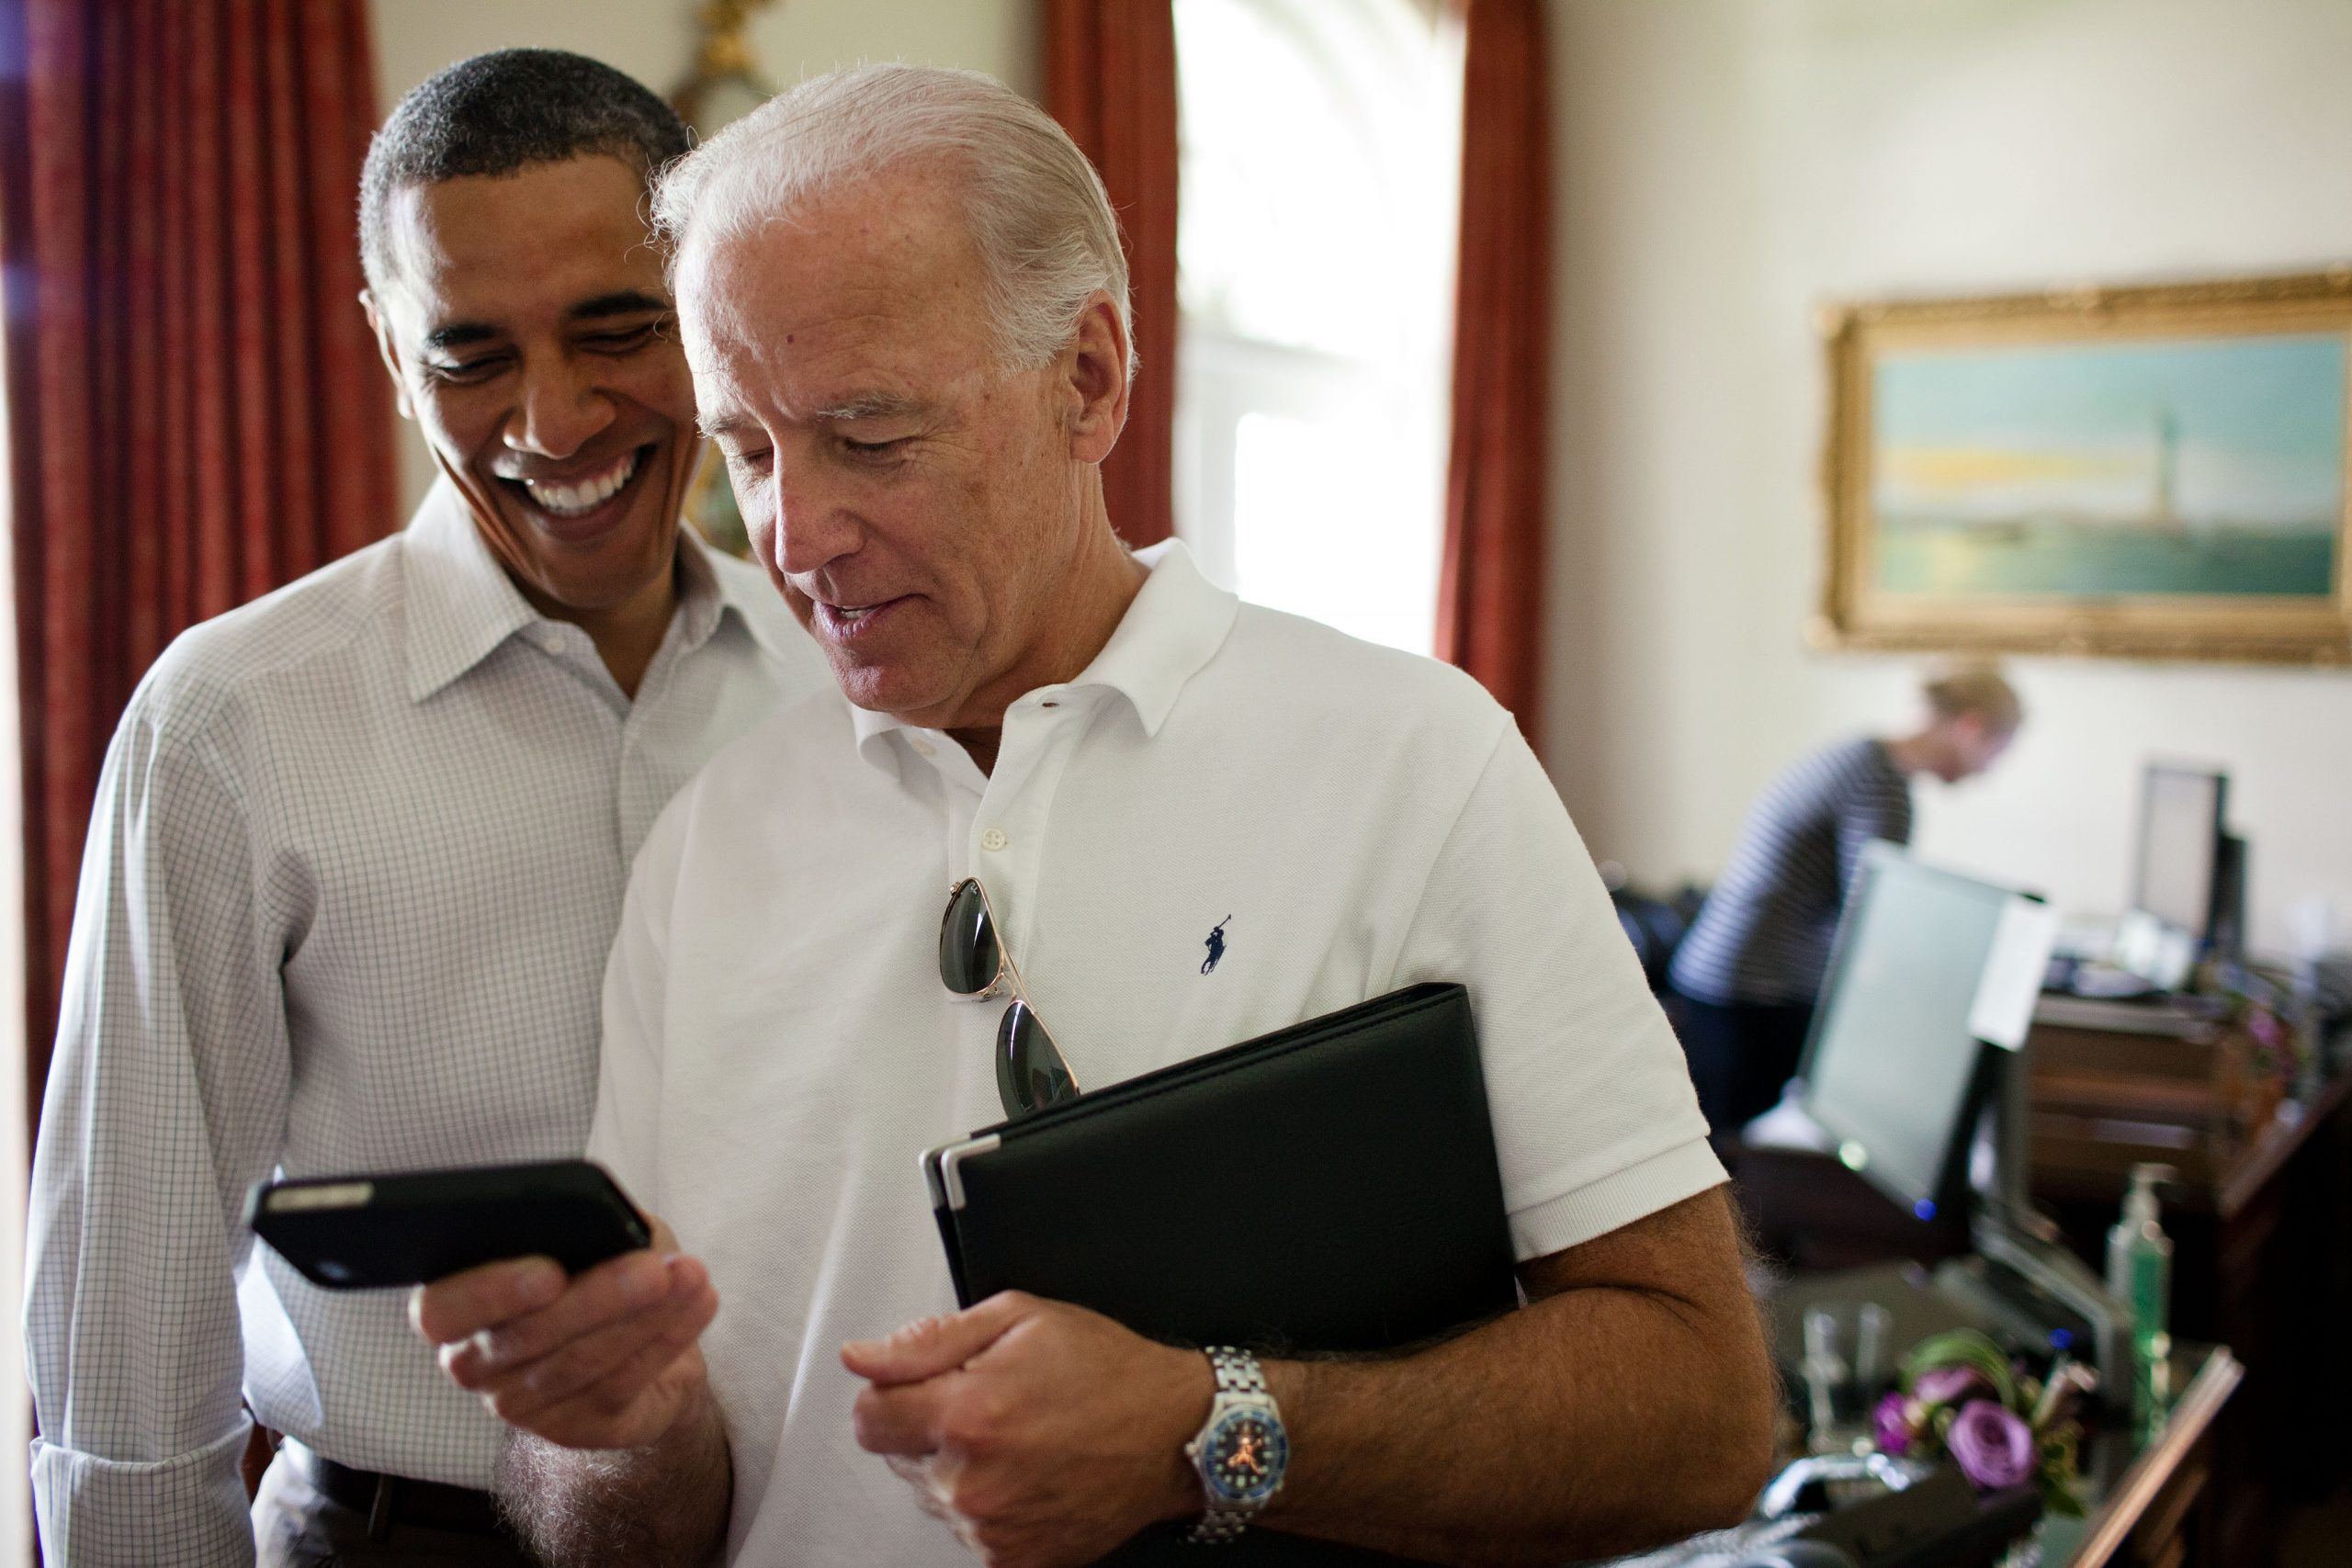 Biden Obama 4096x2731 - Free image bank